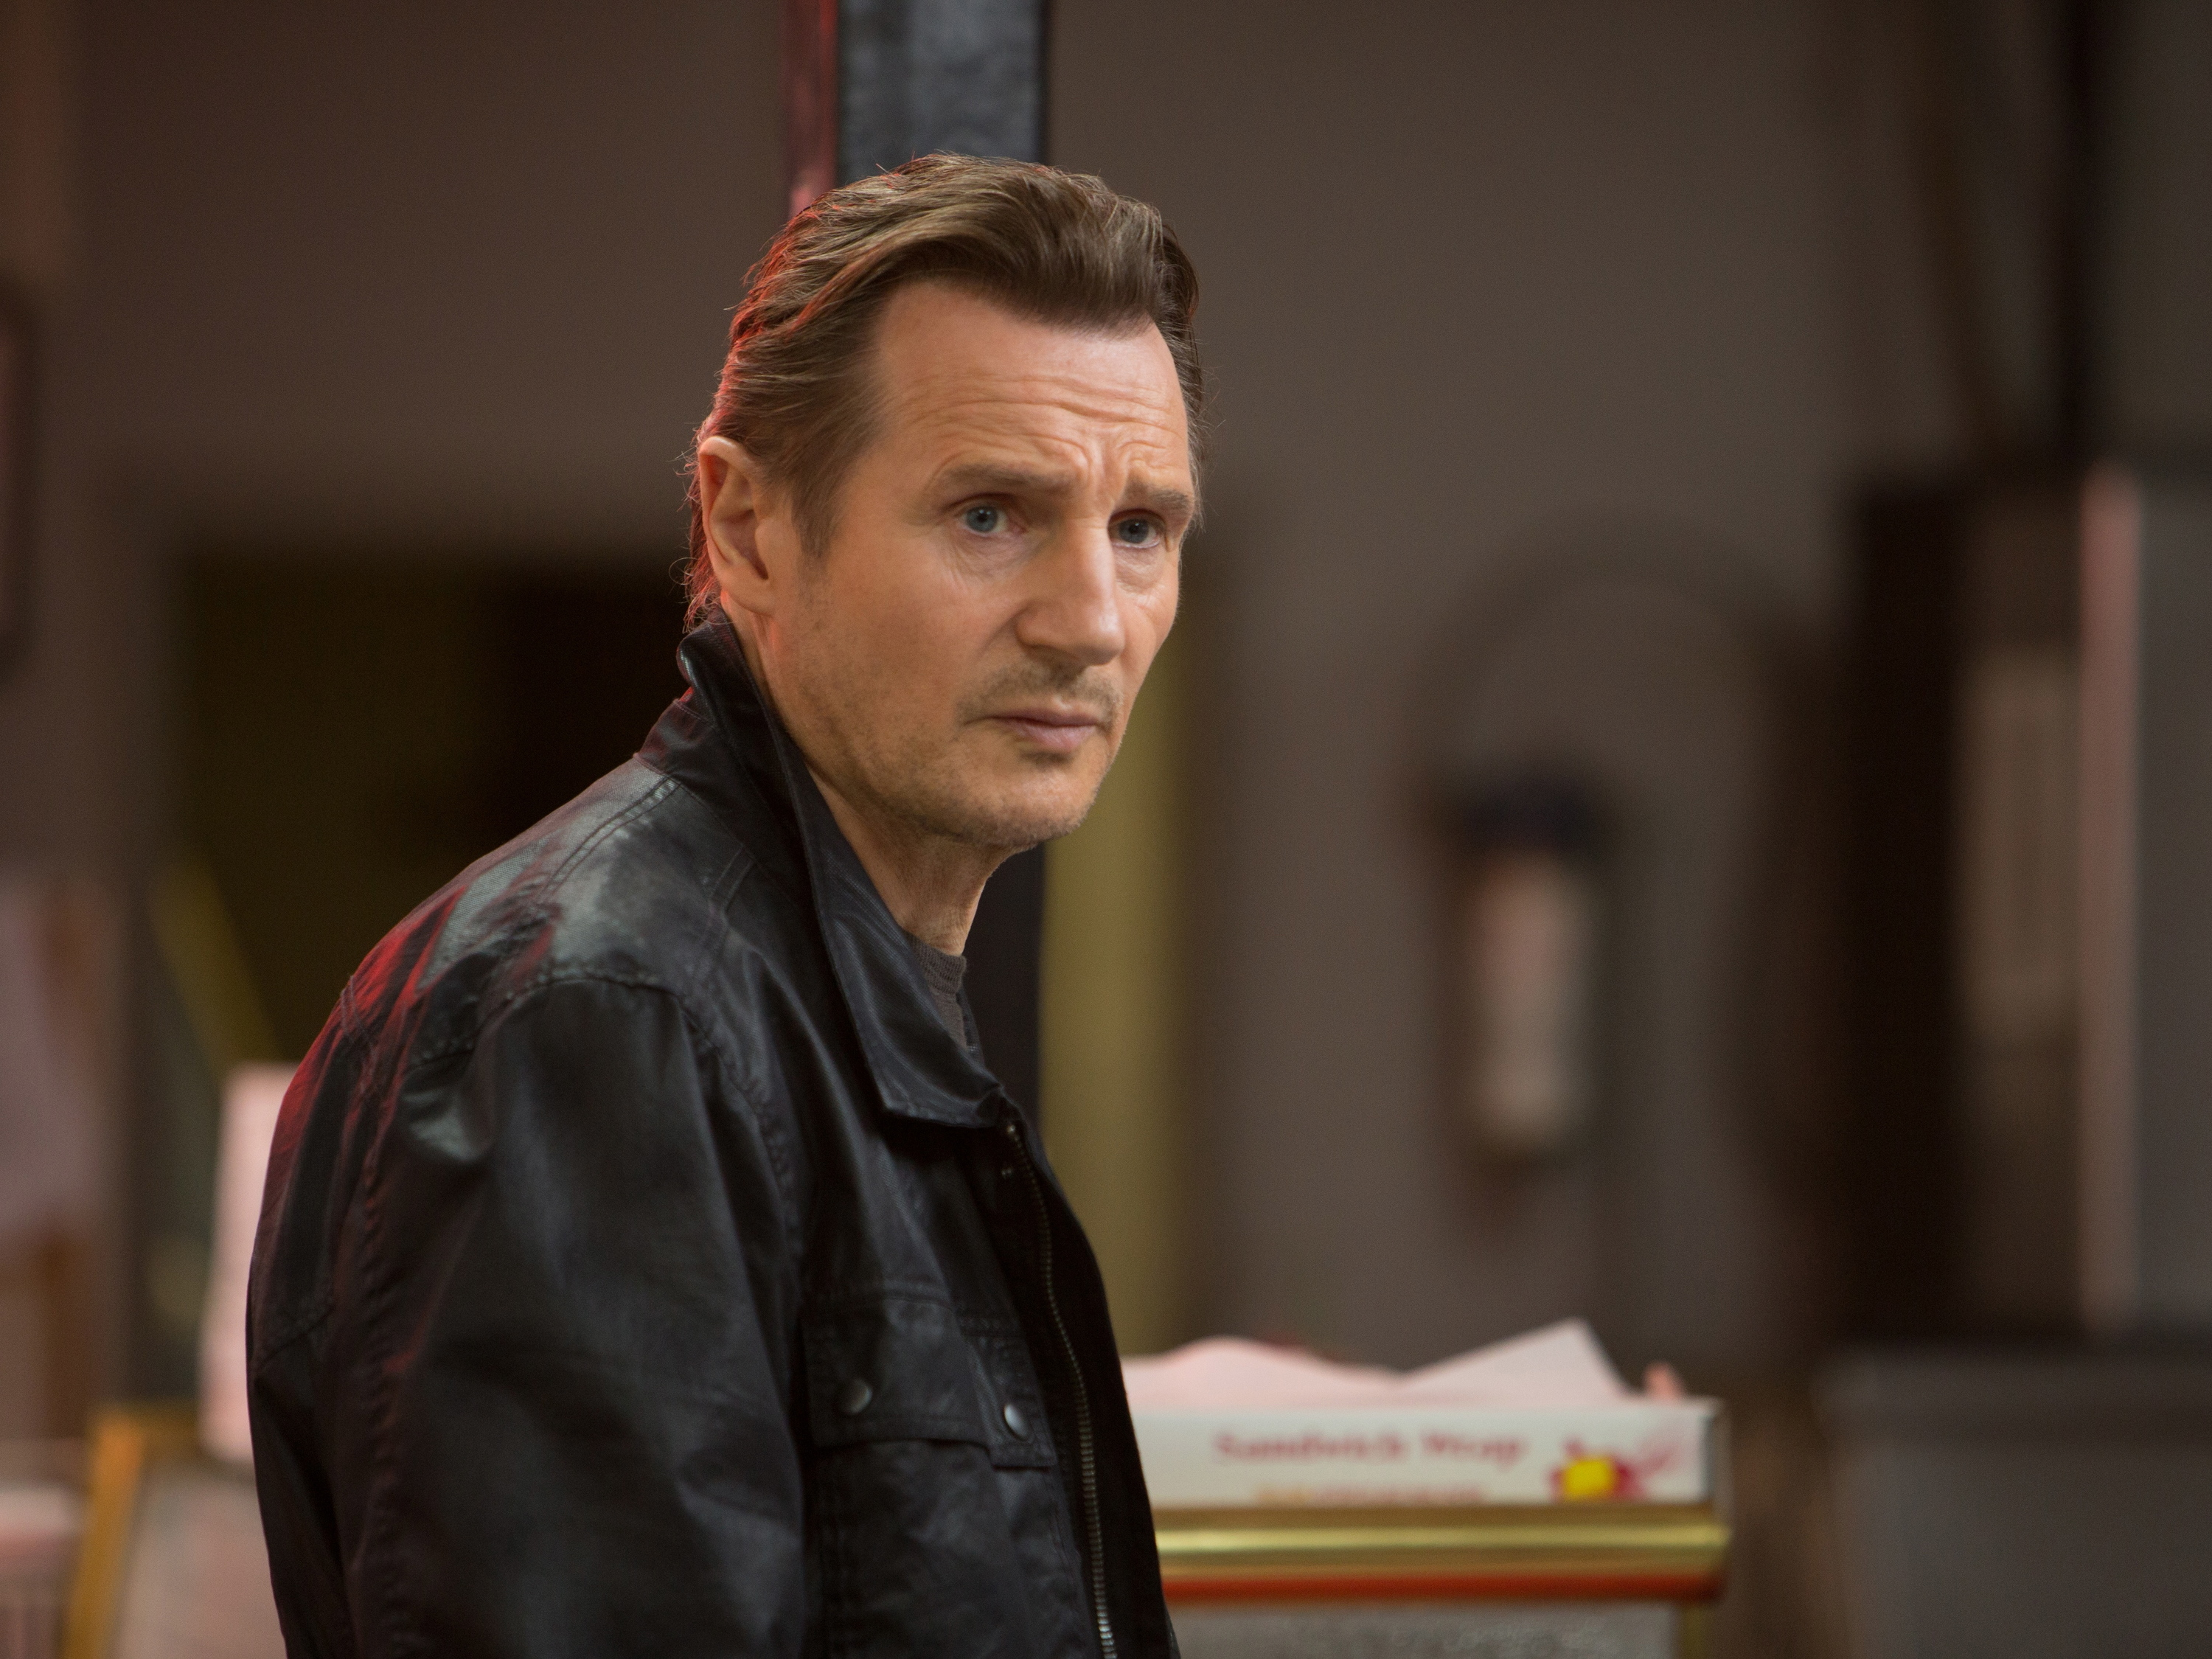 50 Great British actors, Liam Neeson as Brian Mills